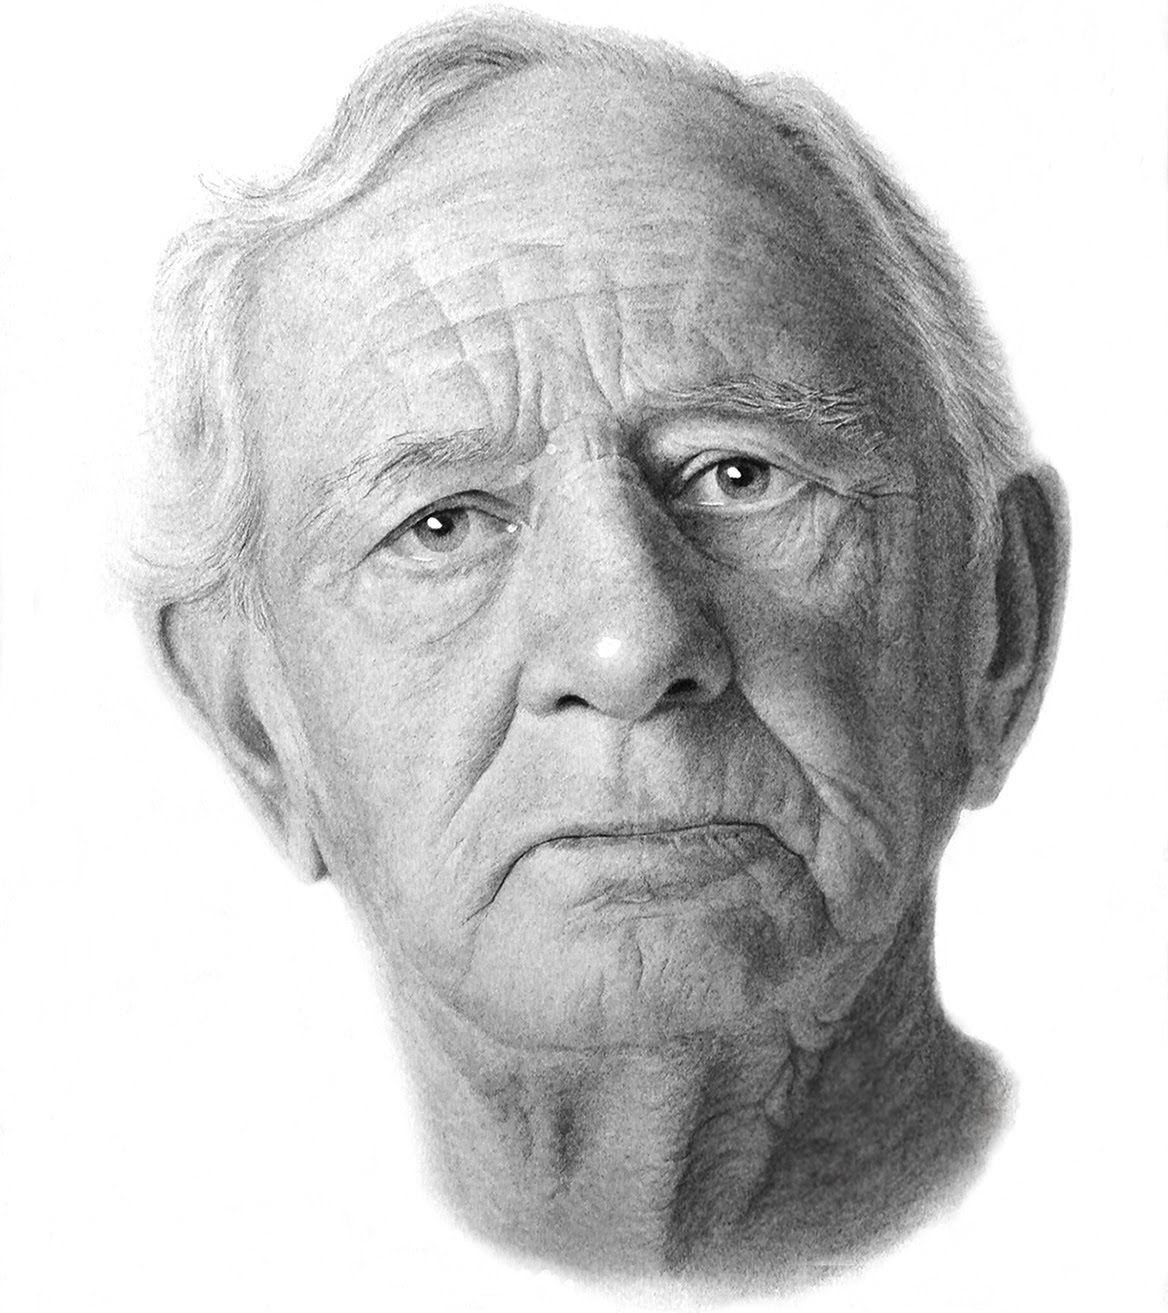 Drawn portrait professional Hillberry by Realistic Techniques Realistic